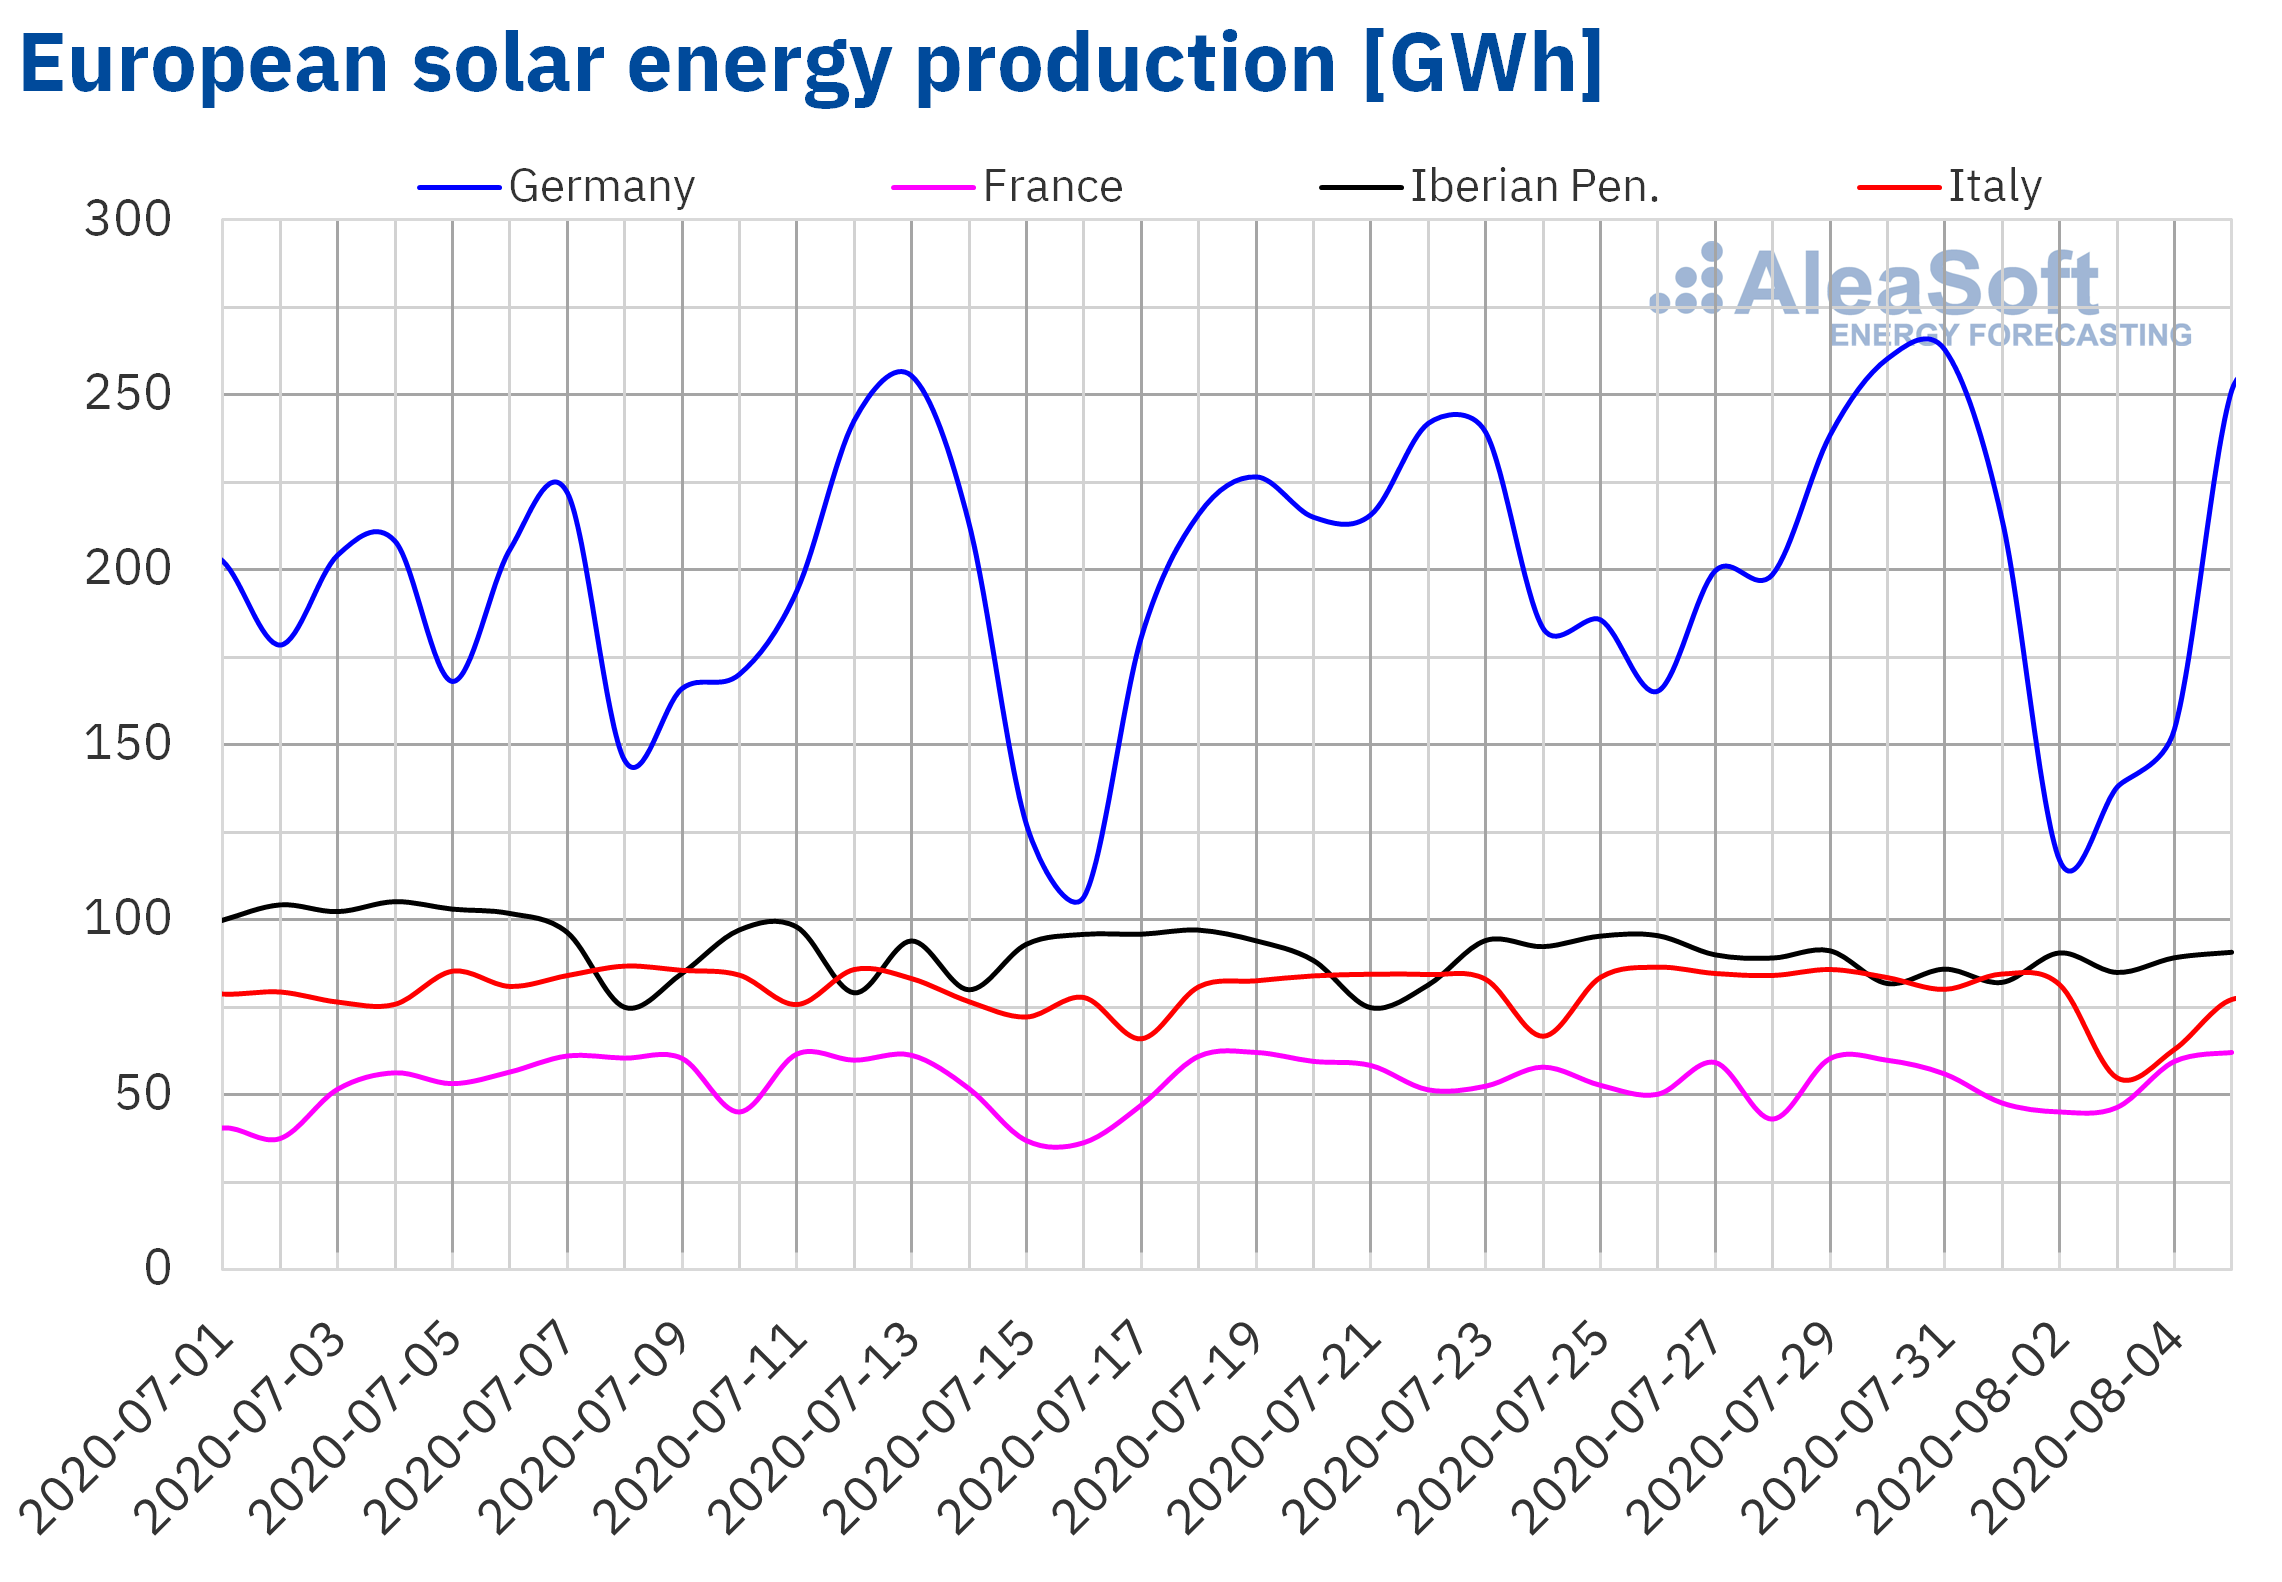 AleaSoft - Solar photovoltaic and thermosolar energy production of Europe